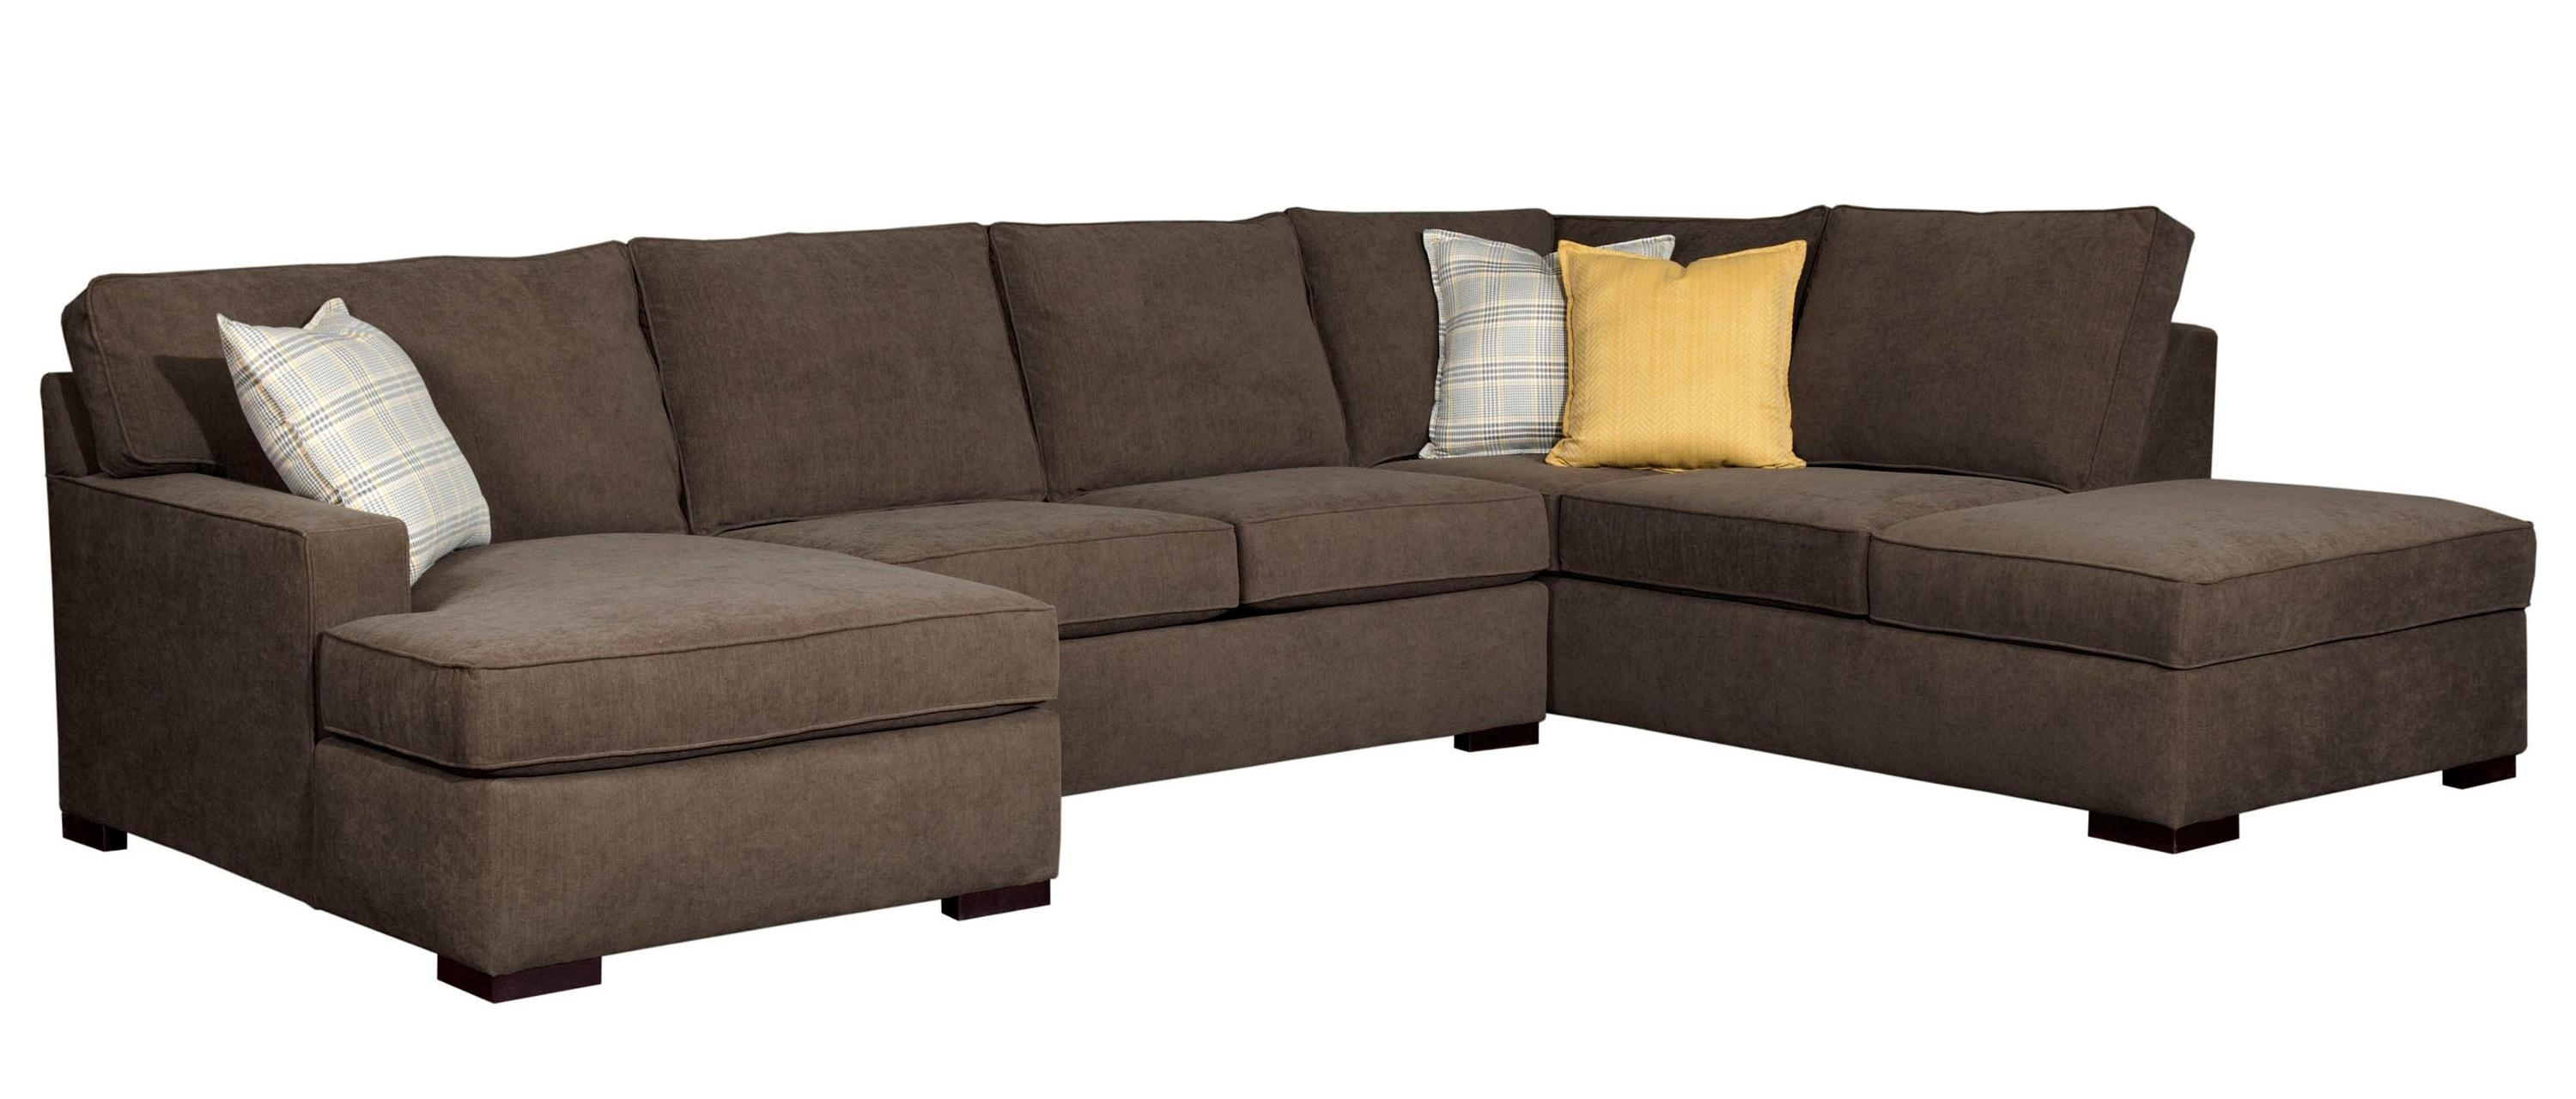 Broyhill Furniture Raphael Contemporary Sectional Sofa With Laf Pertaining To Sectional Sofas At Broyhill (Image 3 of 10)